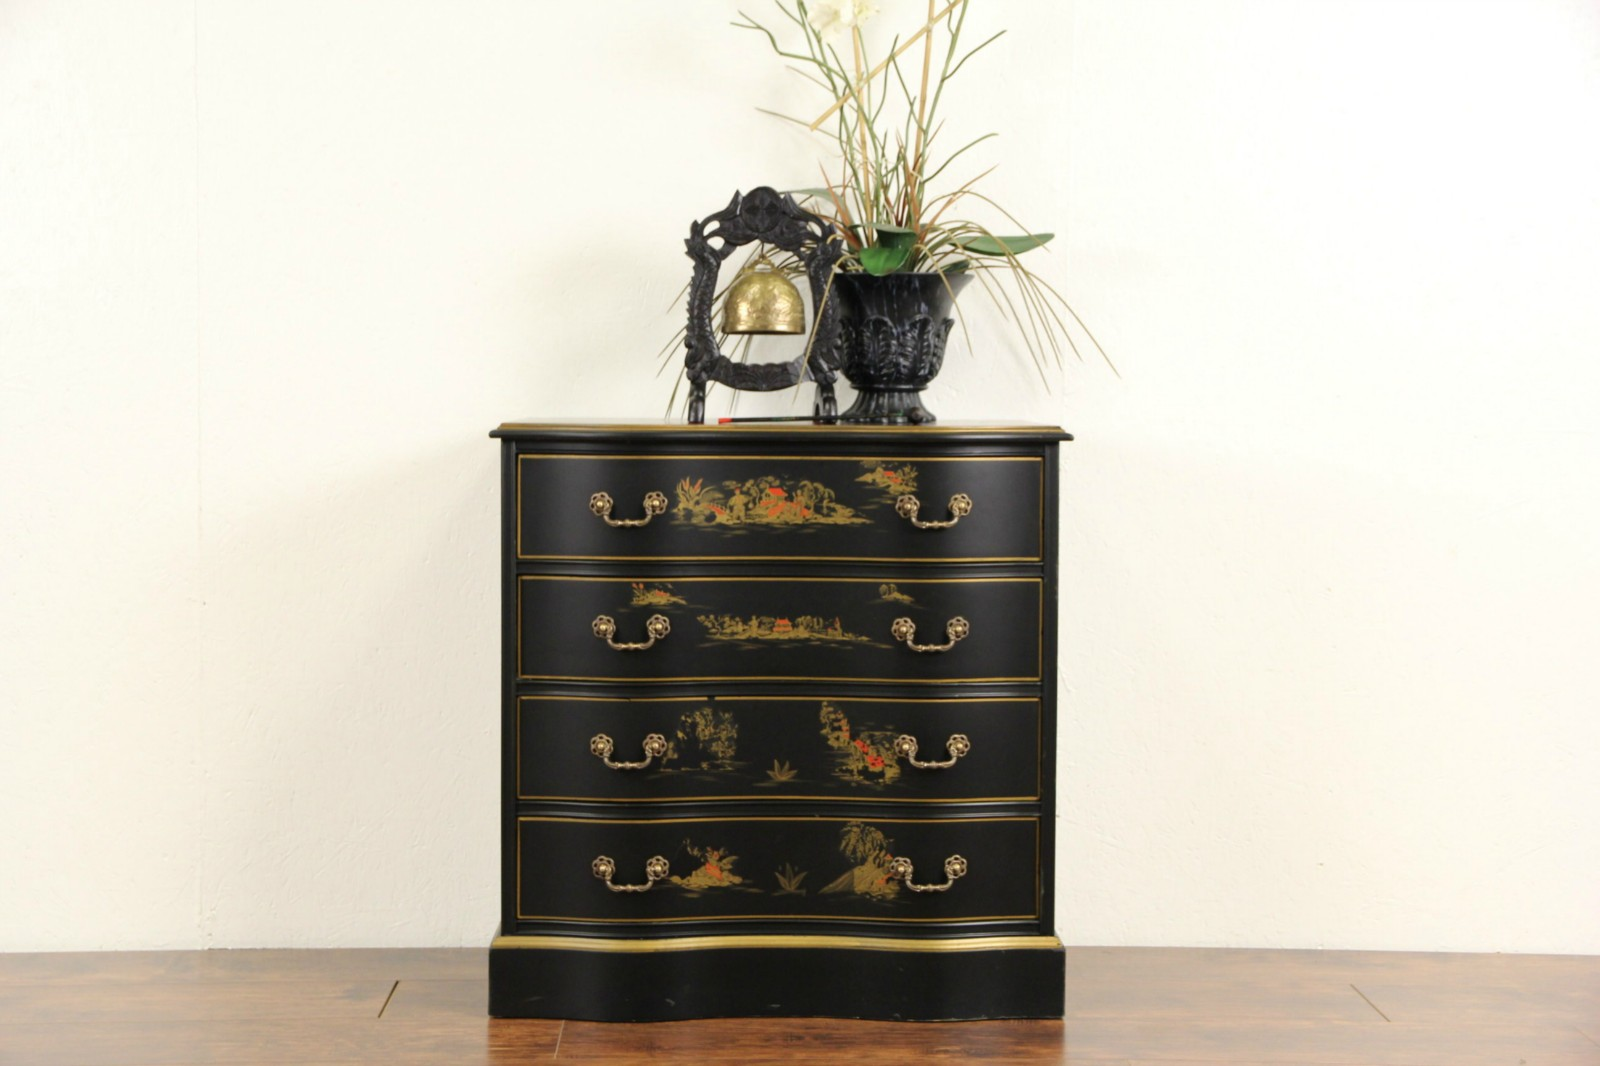 Asian Chinese Black Lacquer Vintage Hall Chest Dresser Or Nightstand